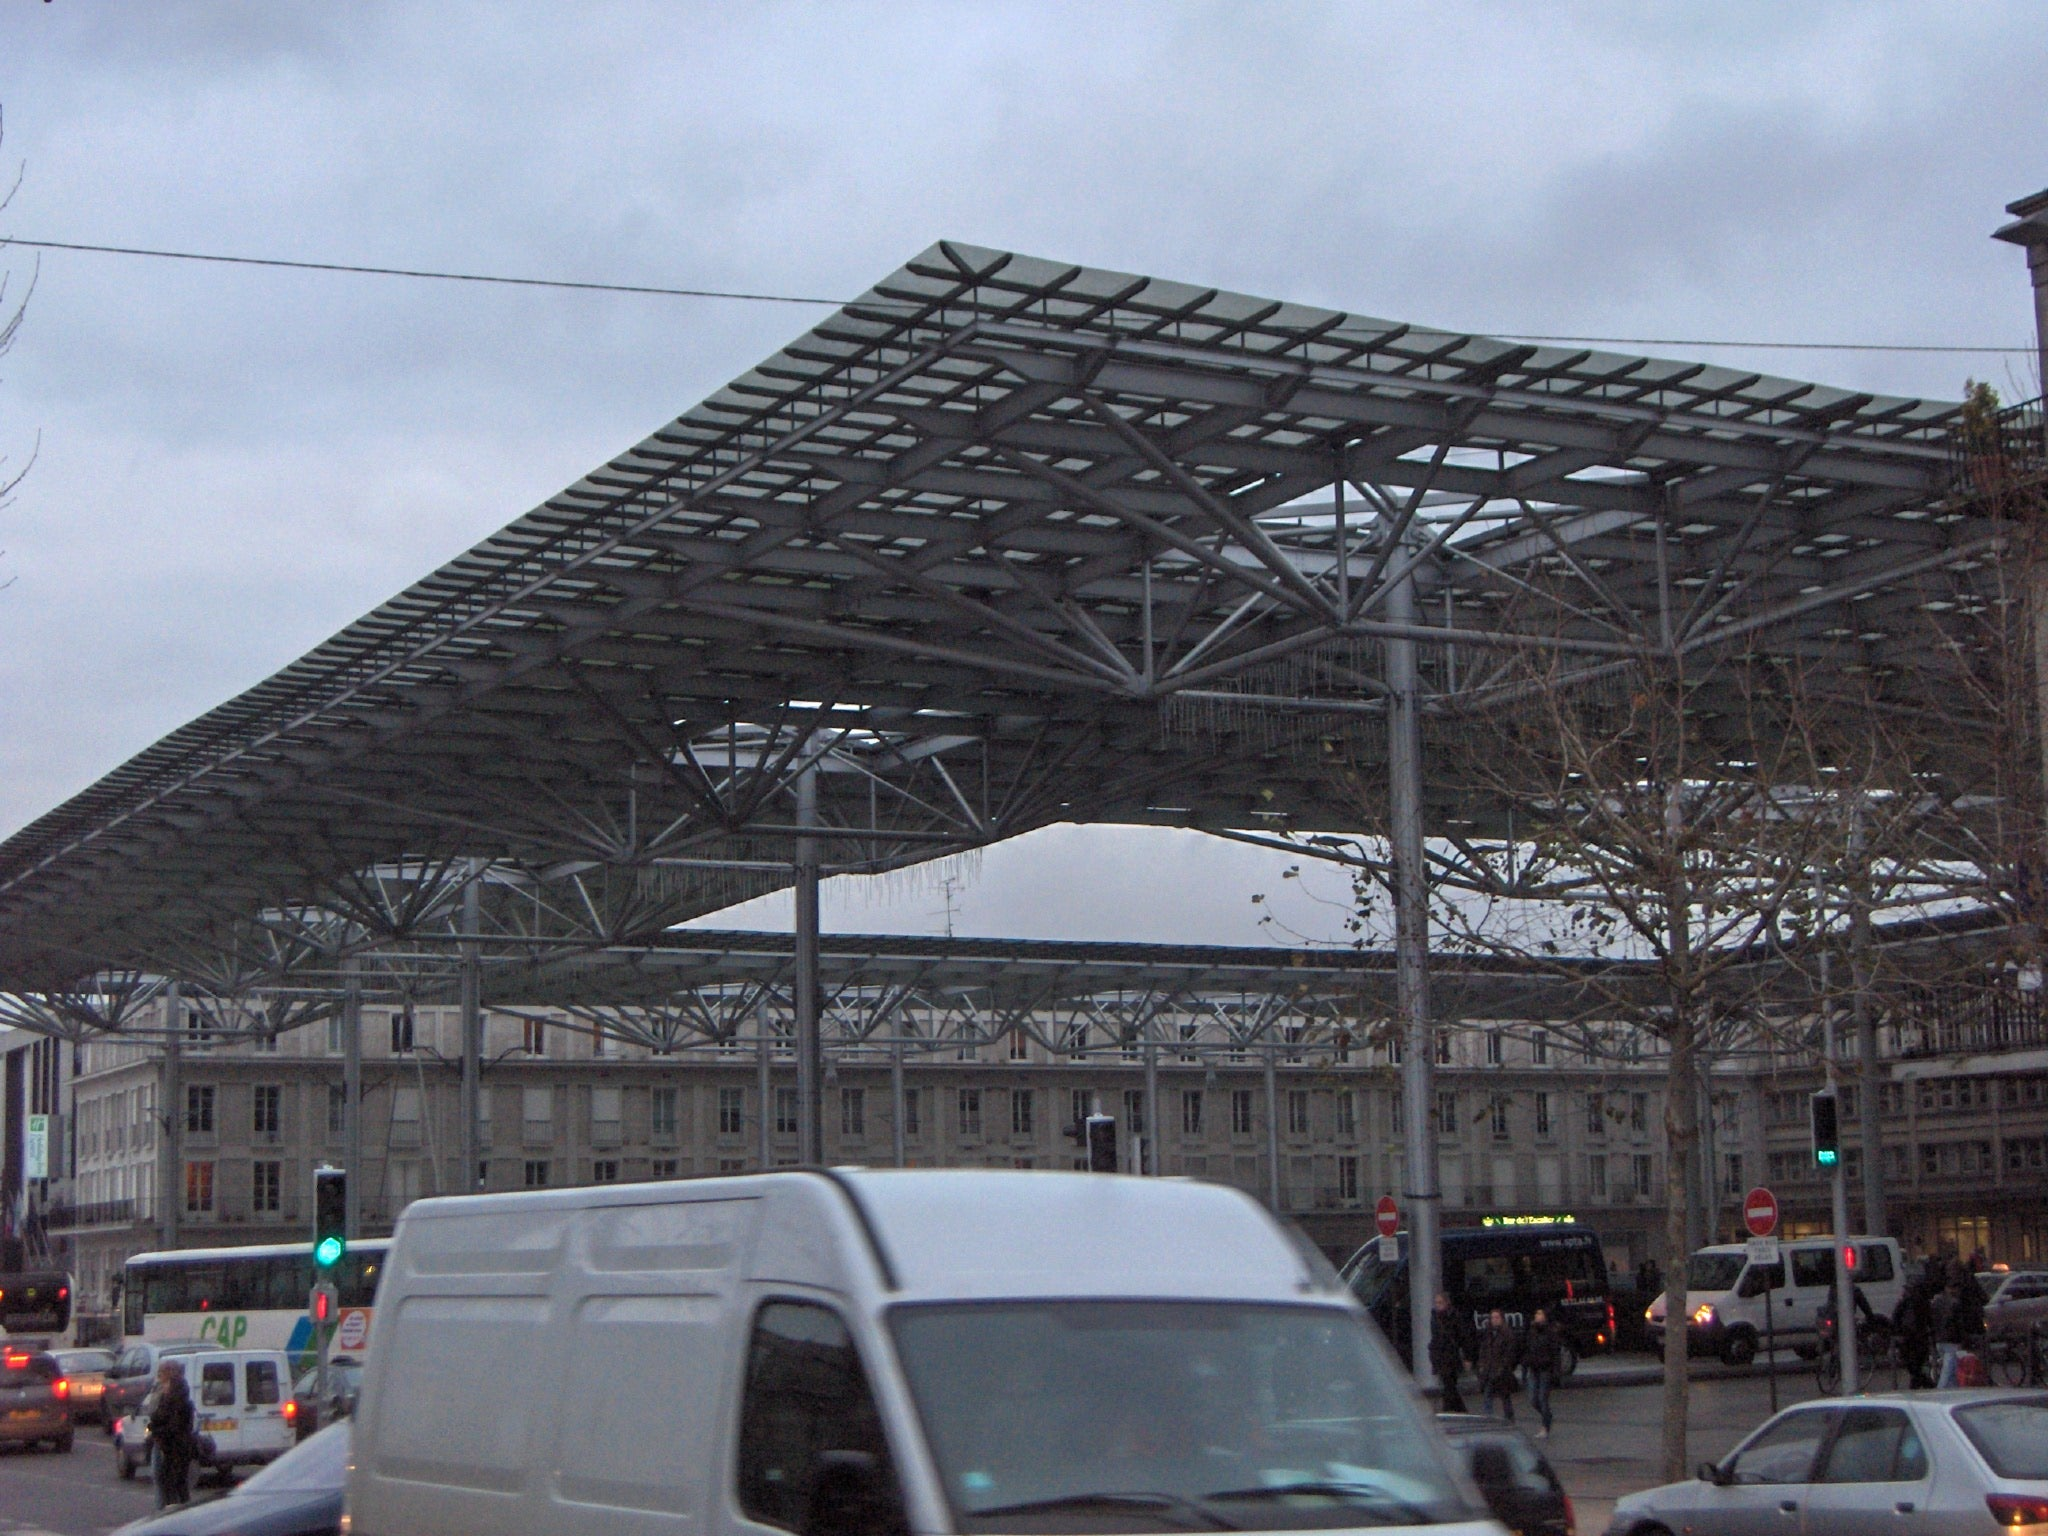 North station Amiens